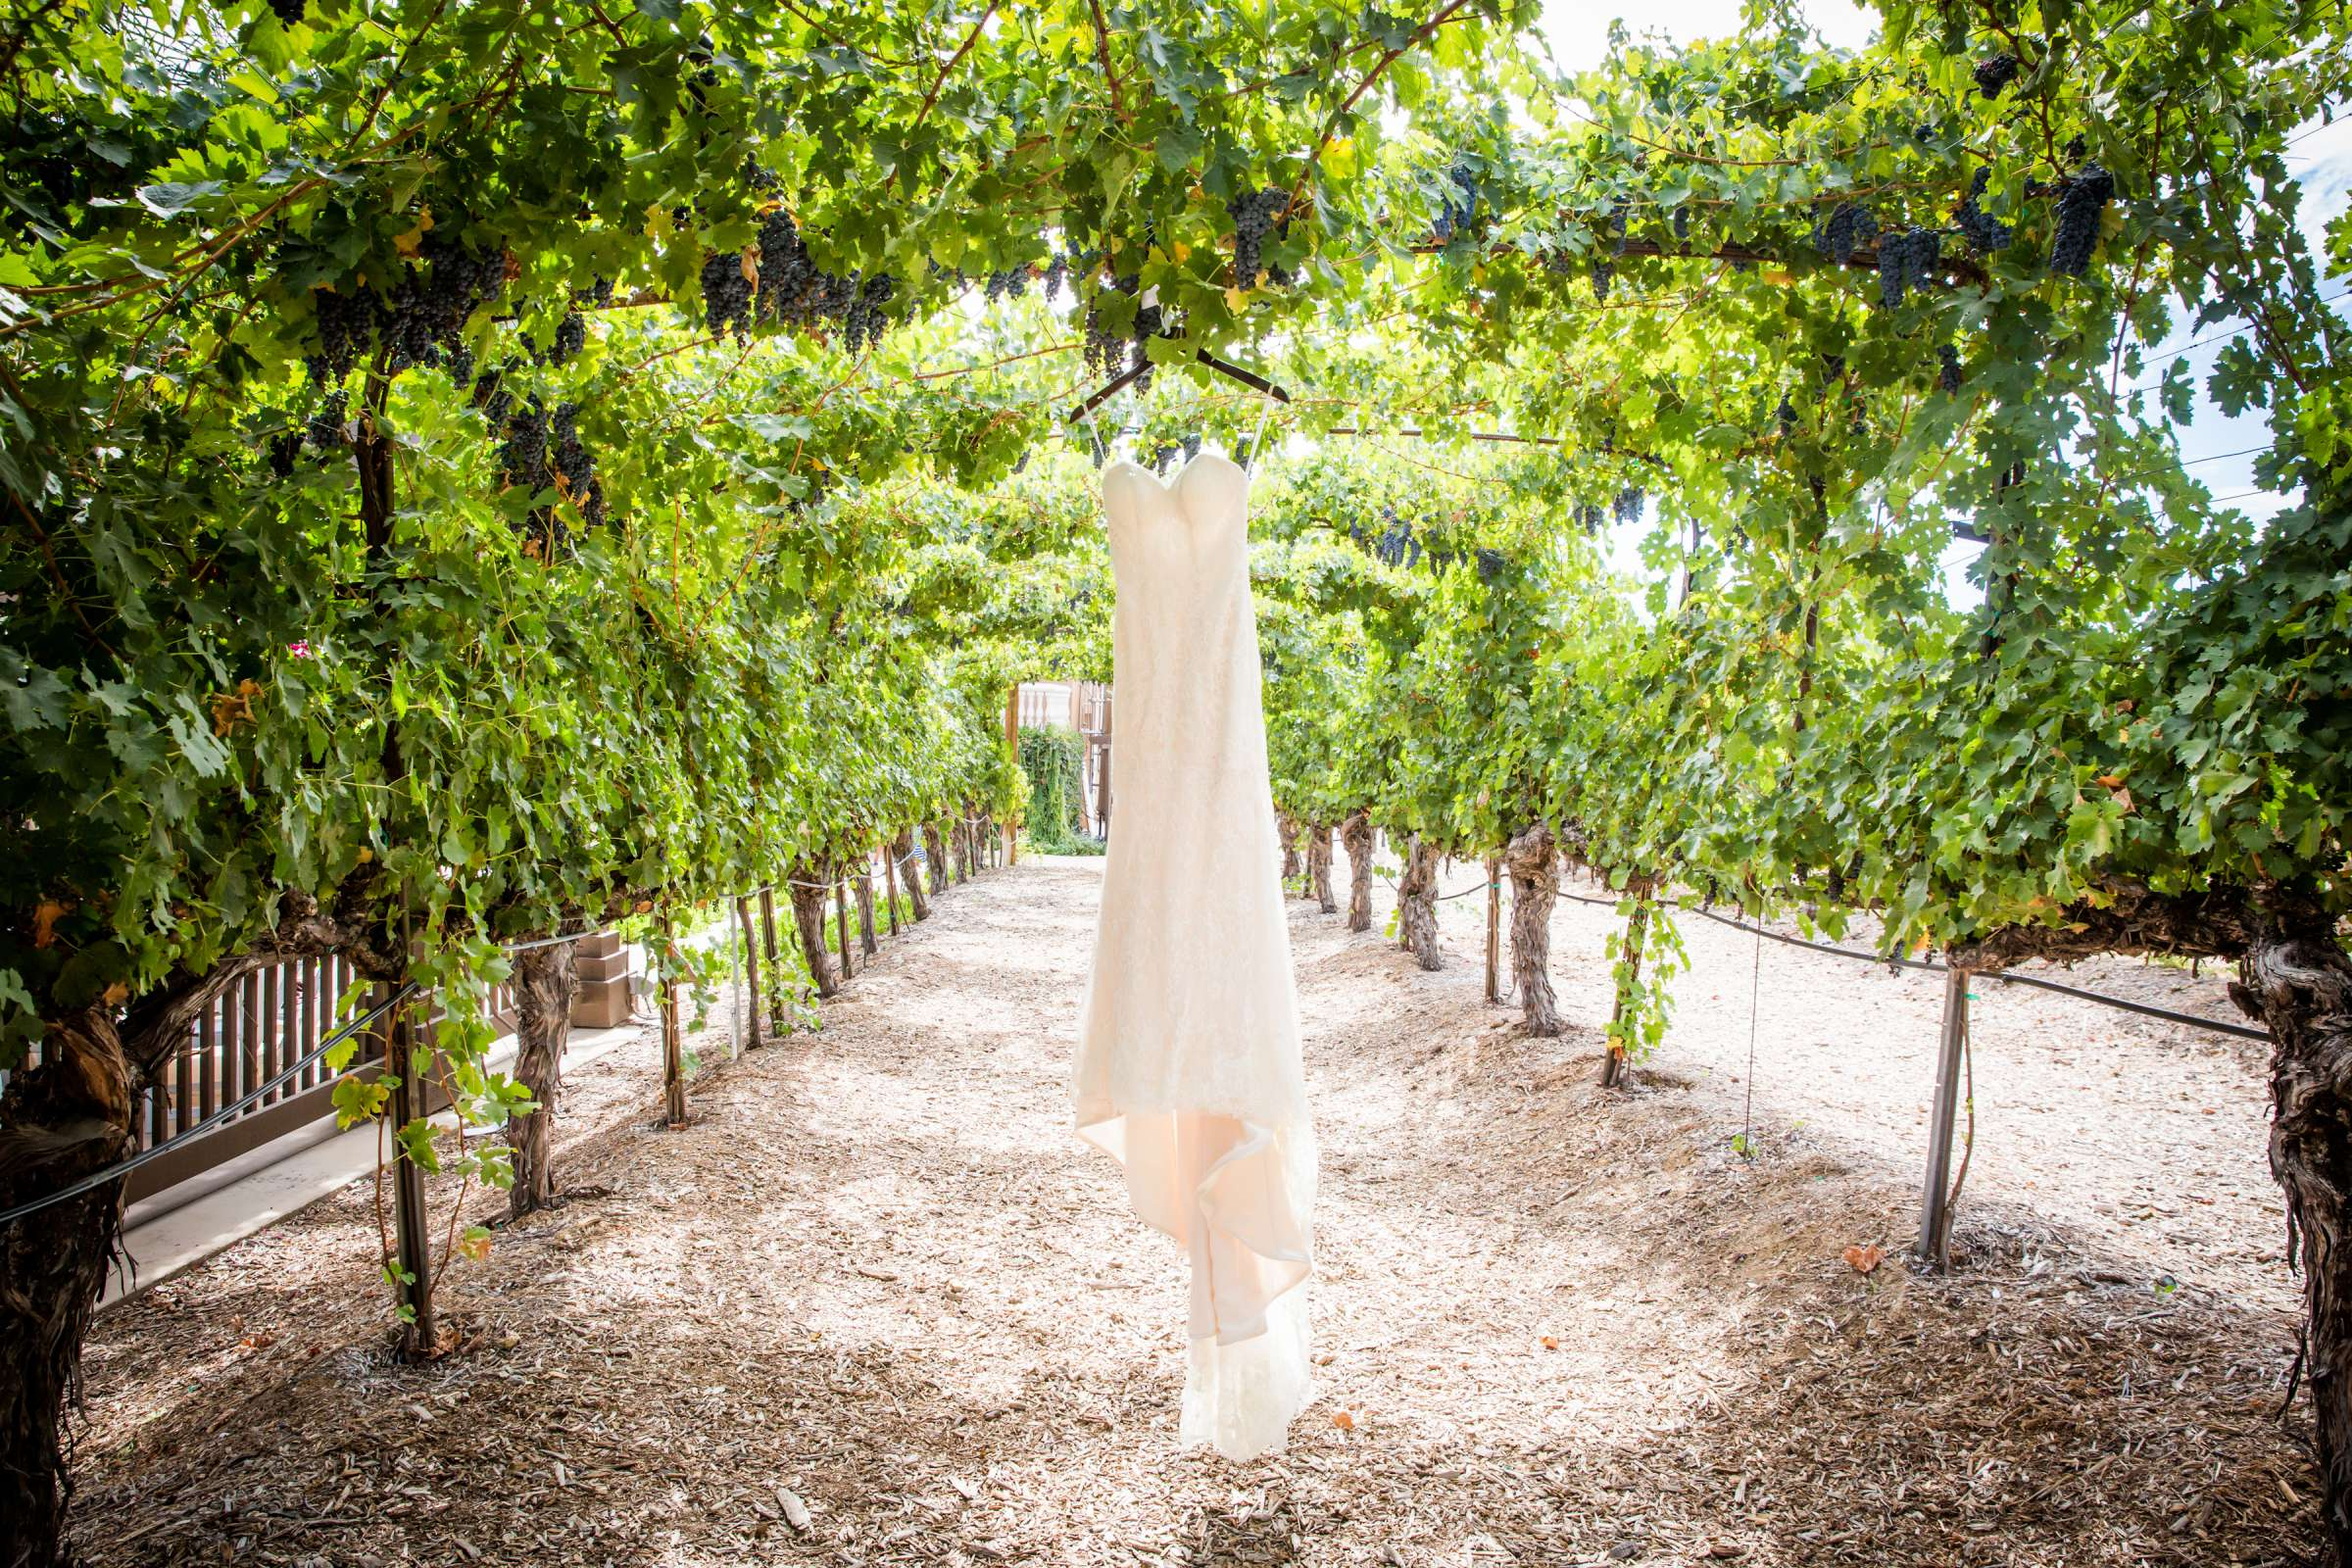 Wilson Creek Winery Wedding, Quynhnhi and Jacob Wedding Photo #22 by True Photography